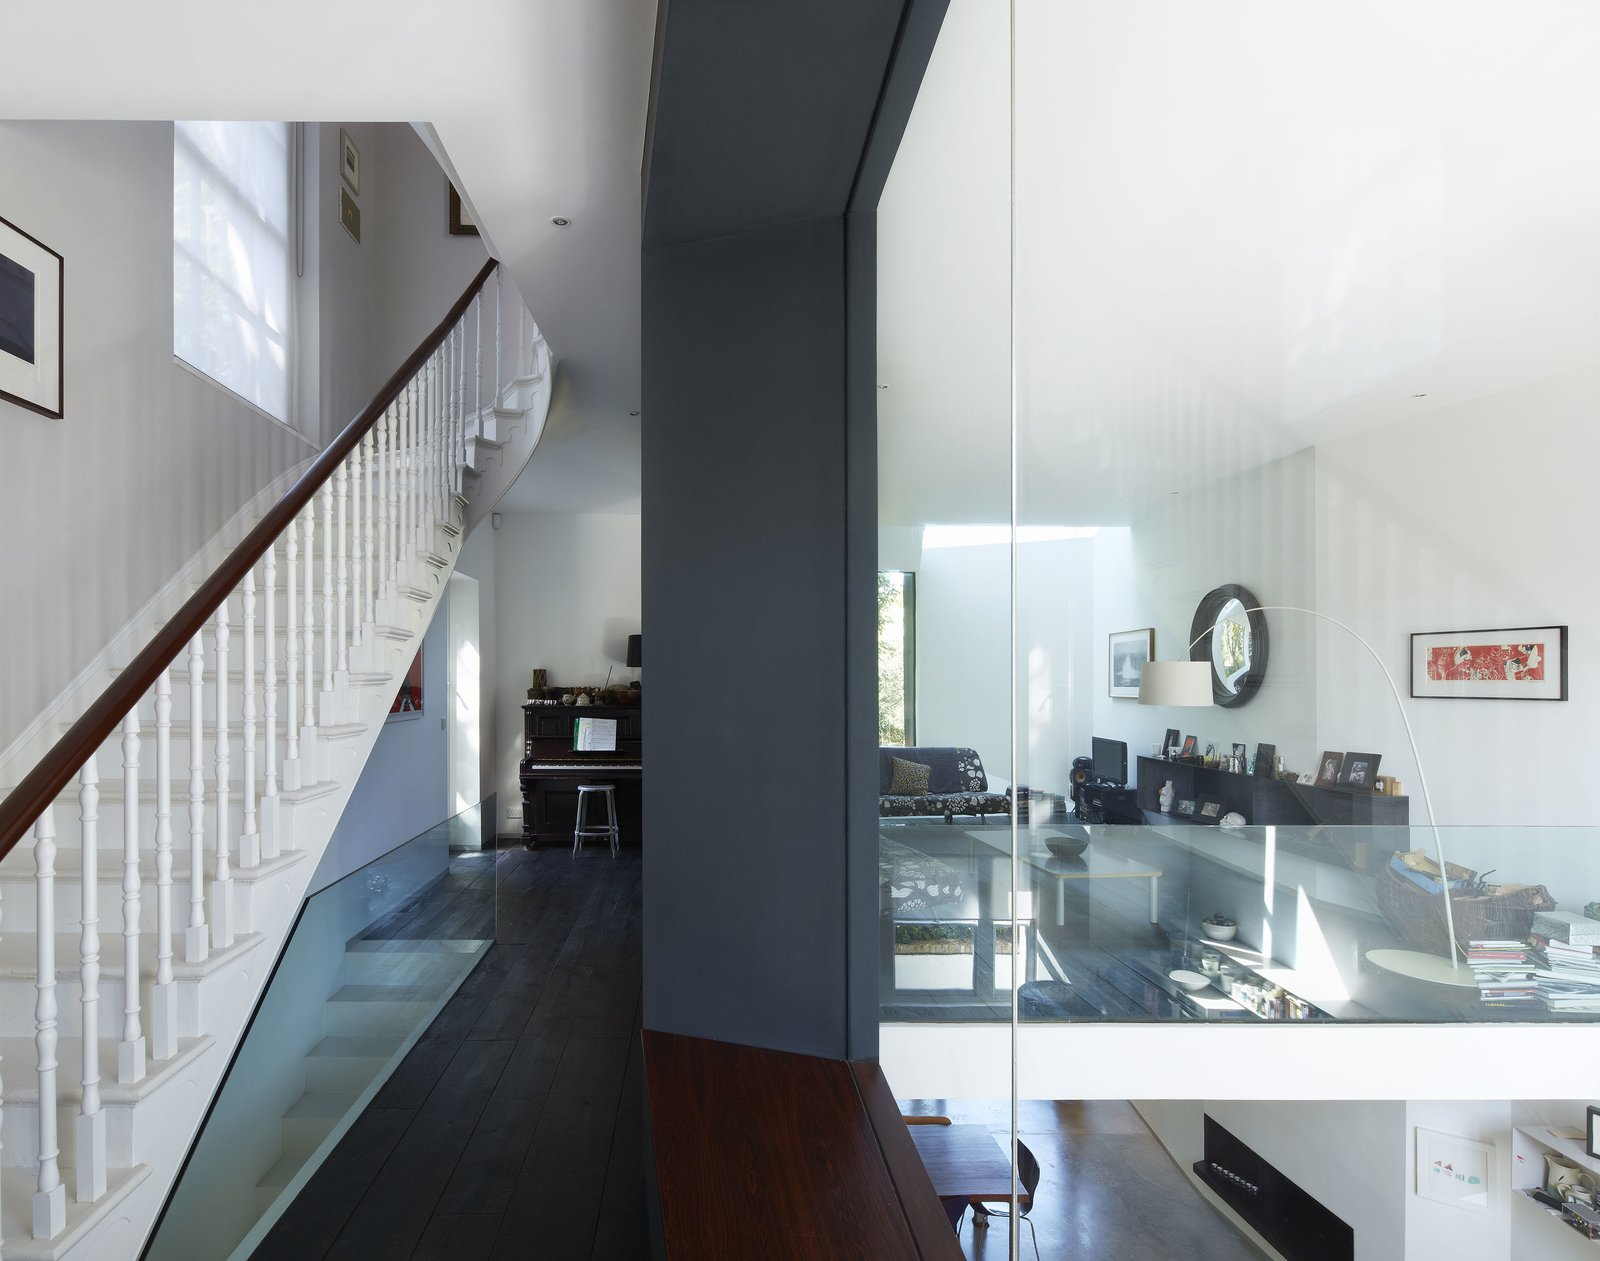 On the mezzanine level, different styles and eras complement each other, from the Georgian staircase to the sheets of glass and the Lola Convex Mirror to the James Irvine sofa.